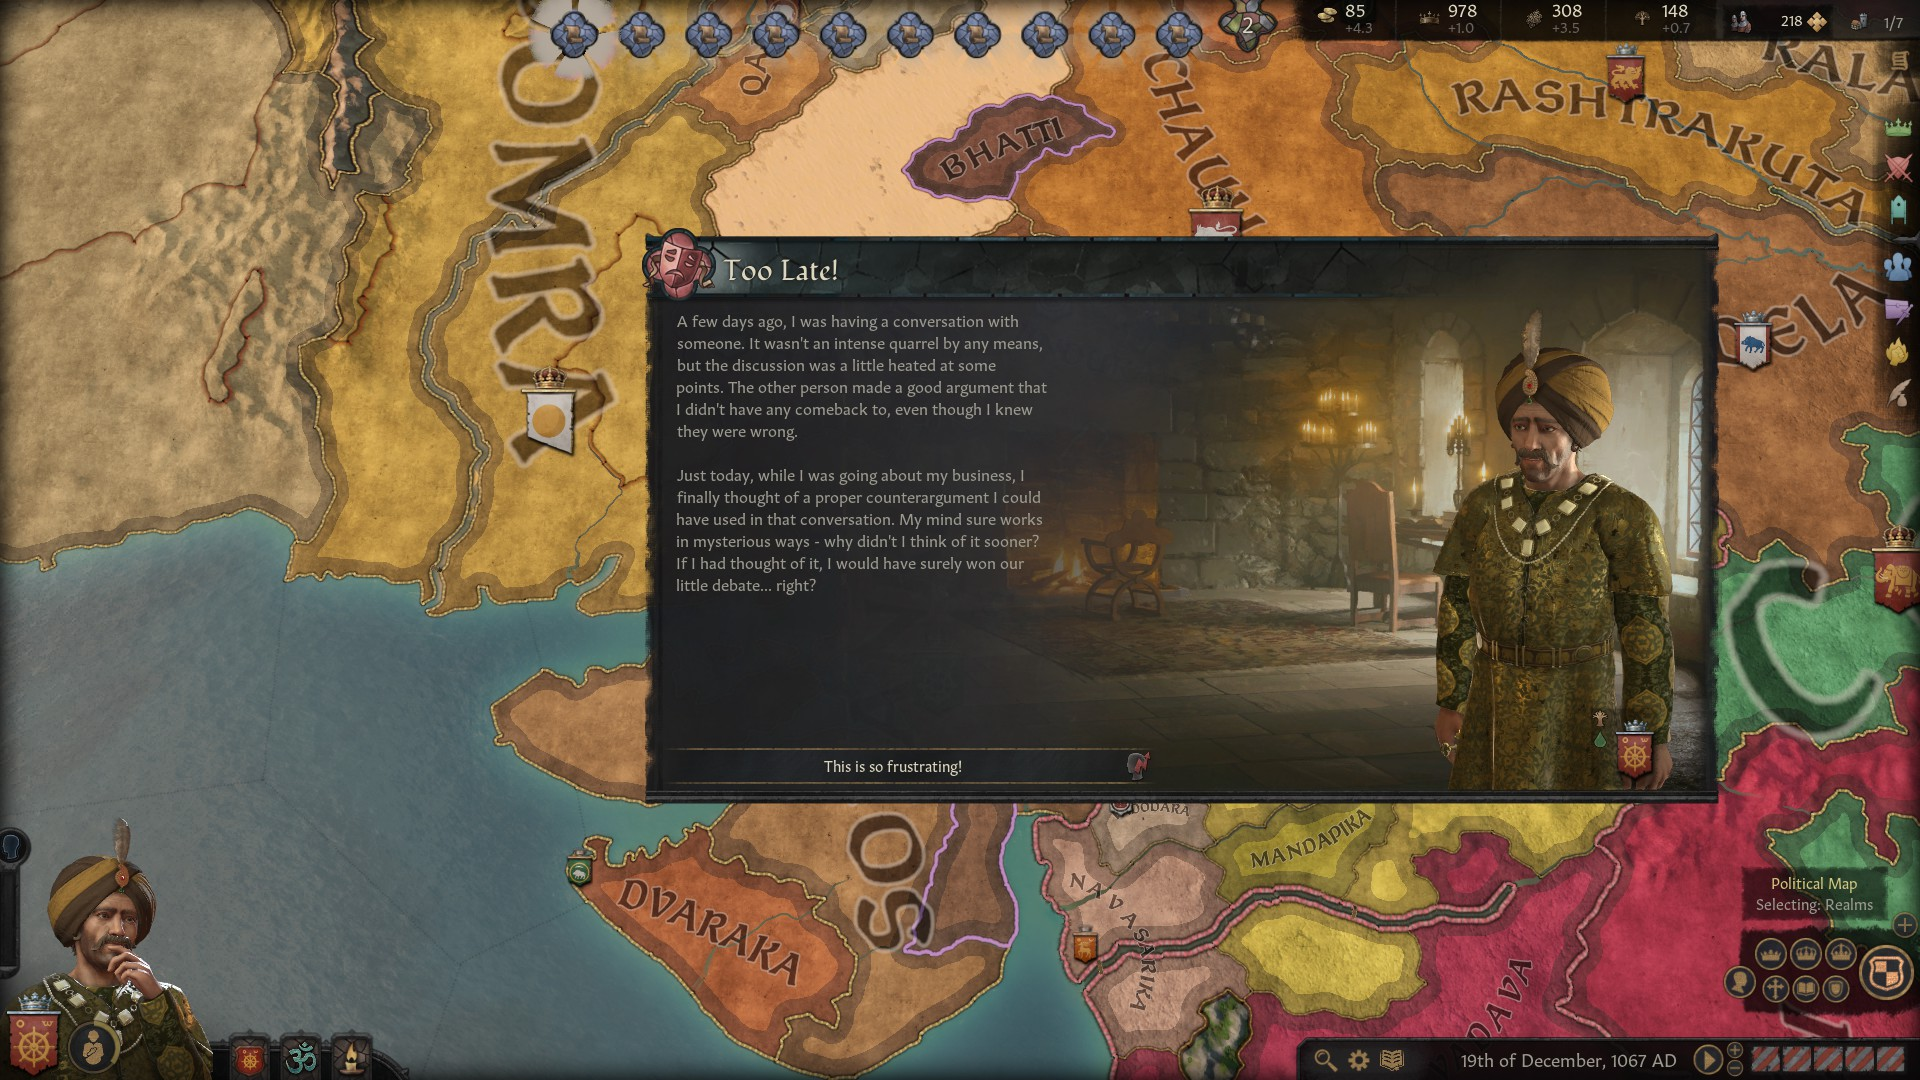 A Crusader Kings 3 screenshot showing an event where a noble character has remembered a clever comeback for a disagreement days before